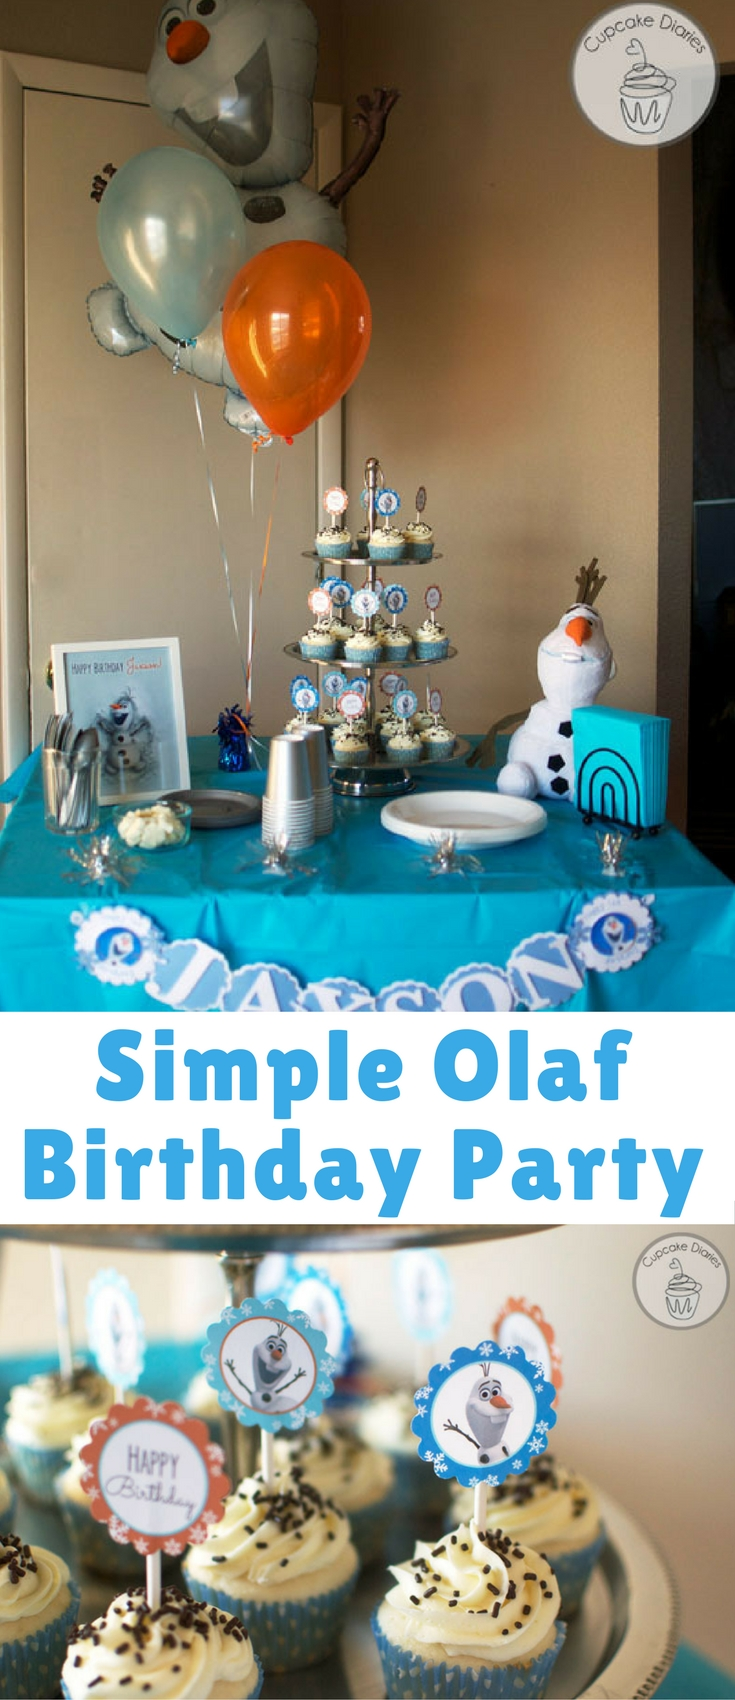 My sweet nephew, Jaxson, turned one in January and his mom wanted to throw him an Olaf birthday party. I was thrilled when she asked me to help her with it! She didn't want anything over the top, but she also wanted to make it special with a few different elements. It ended up being a darling party.